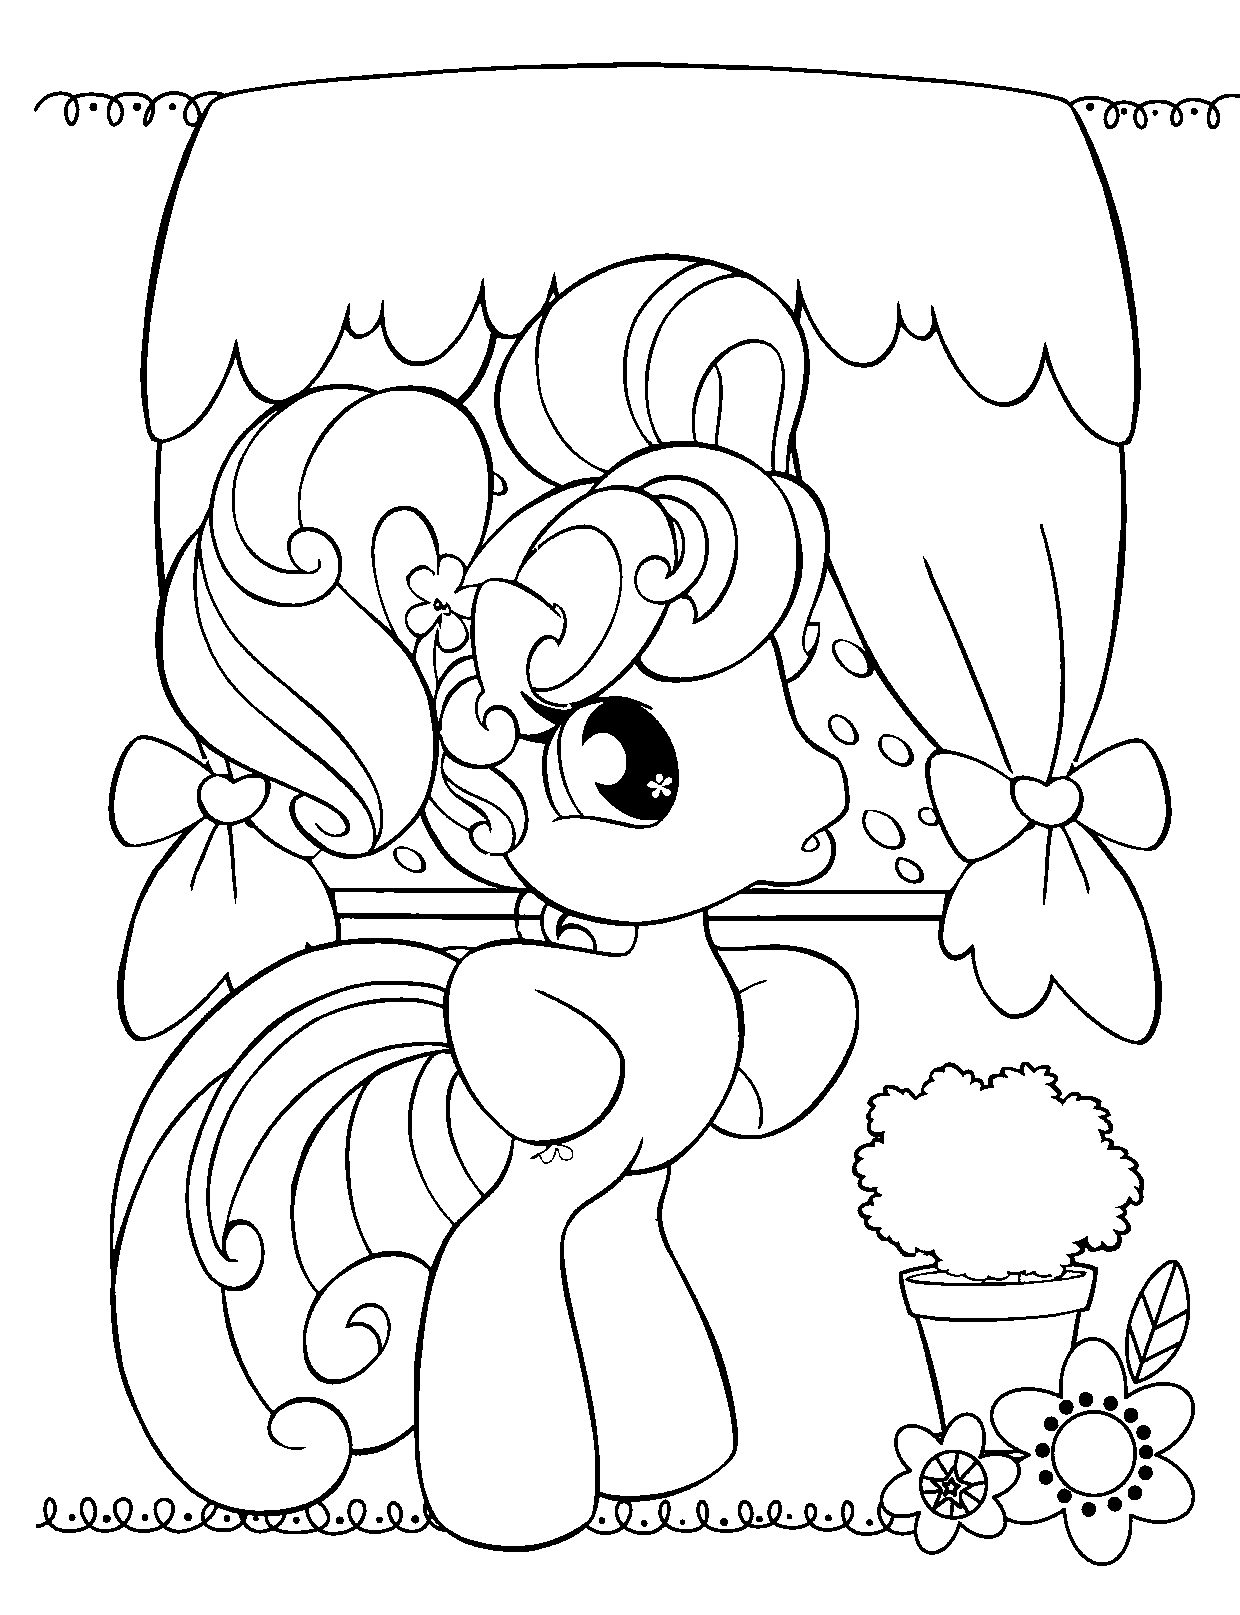 Free coloring pages online for free - My Little Pony Online Coloring Pages